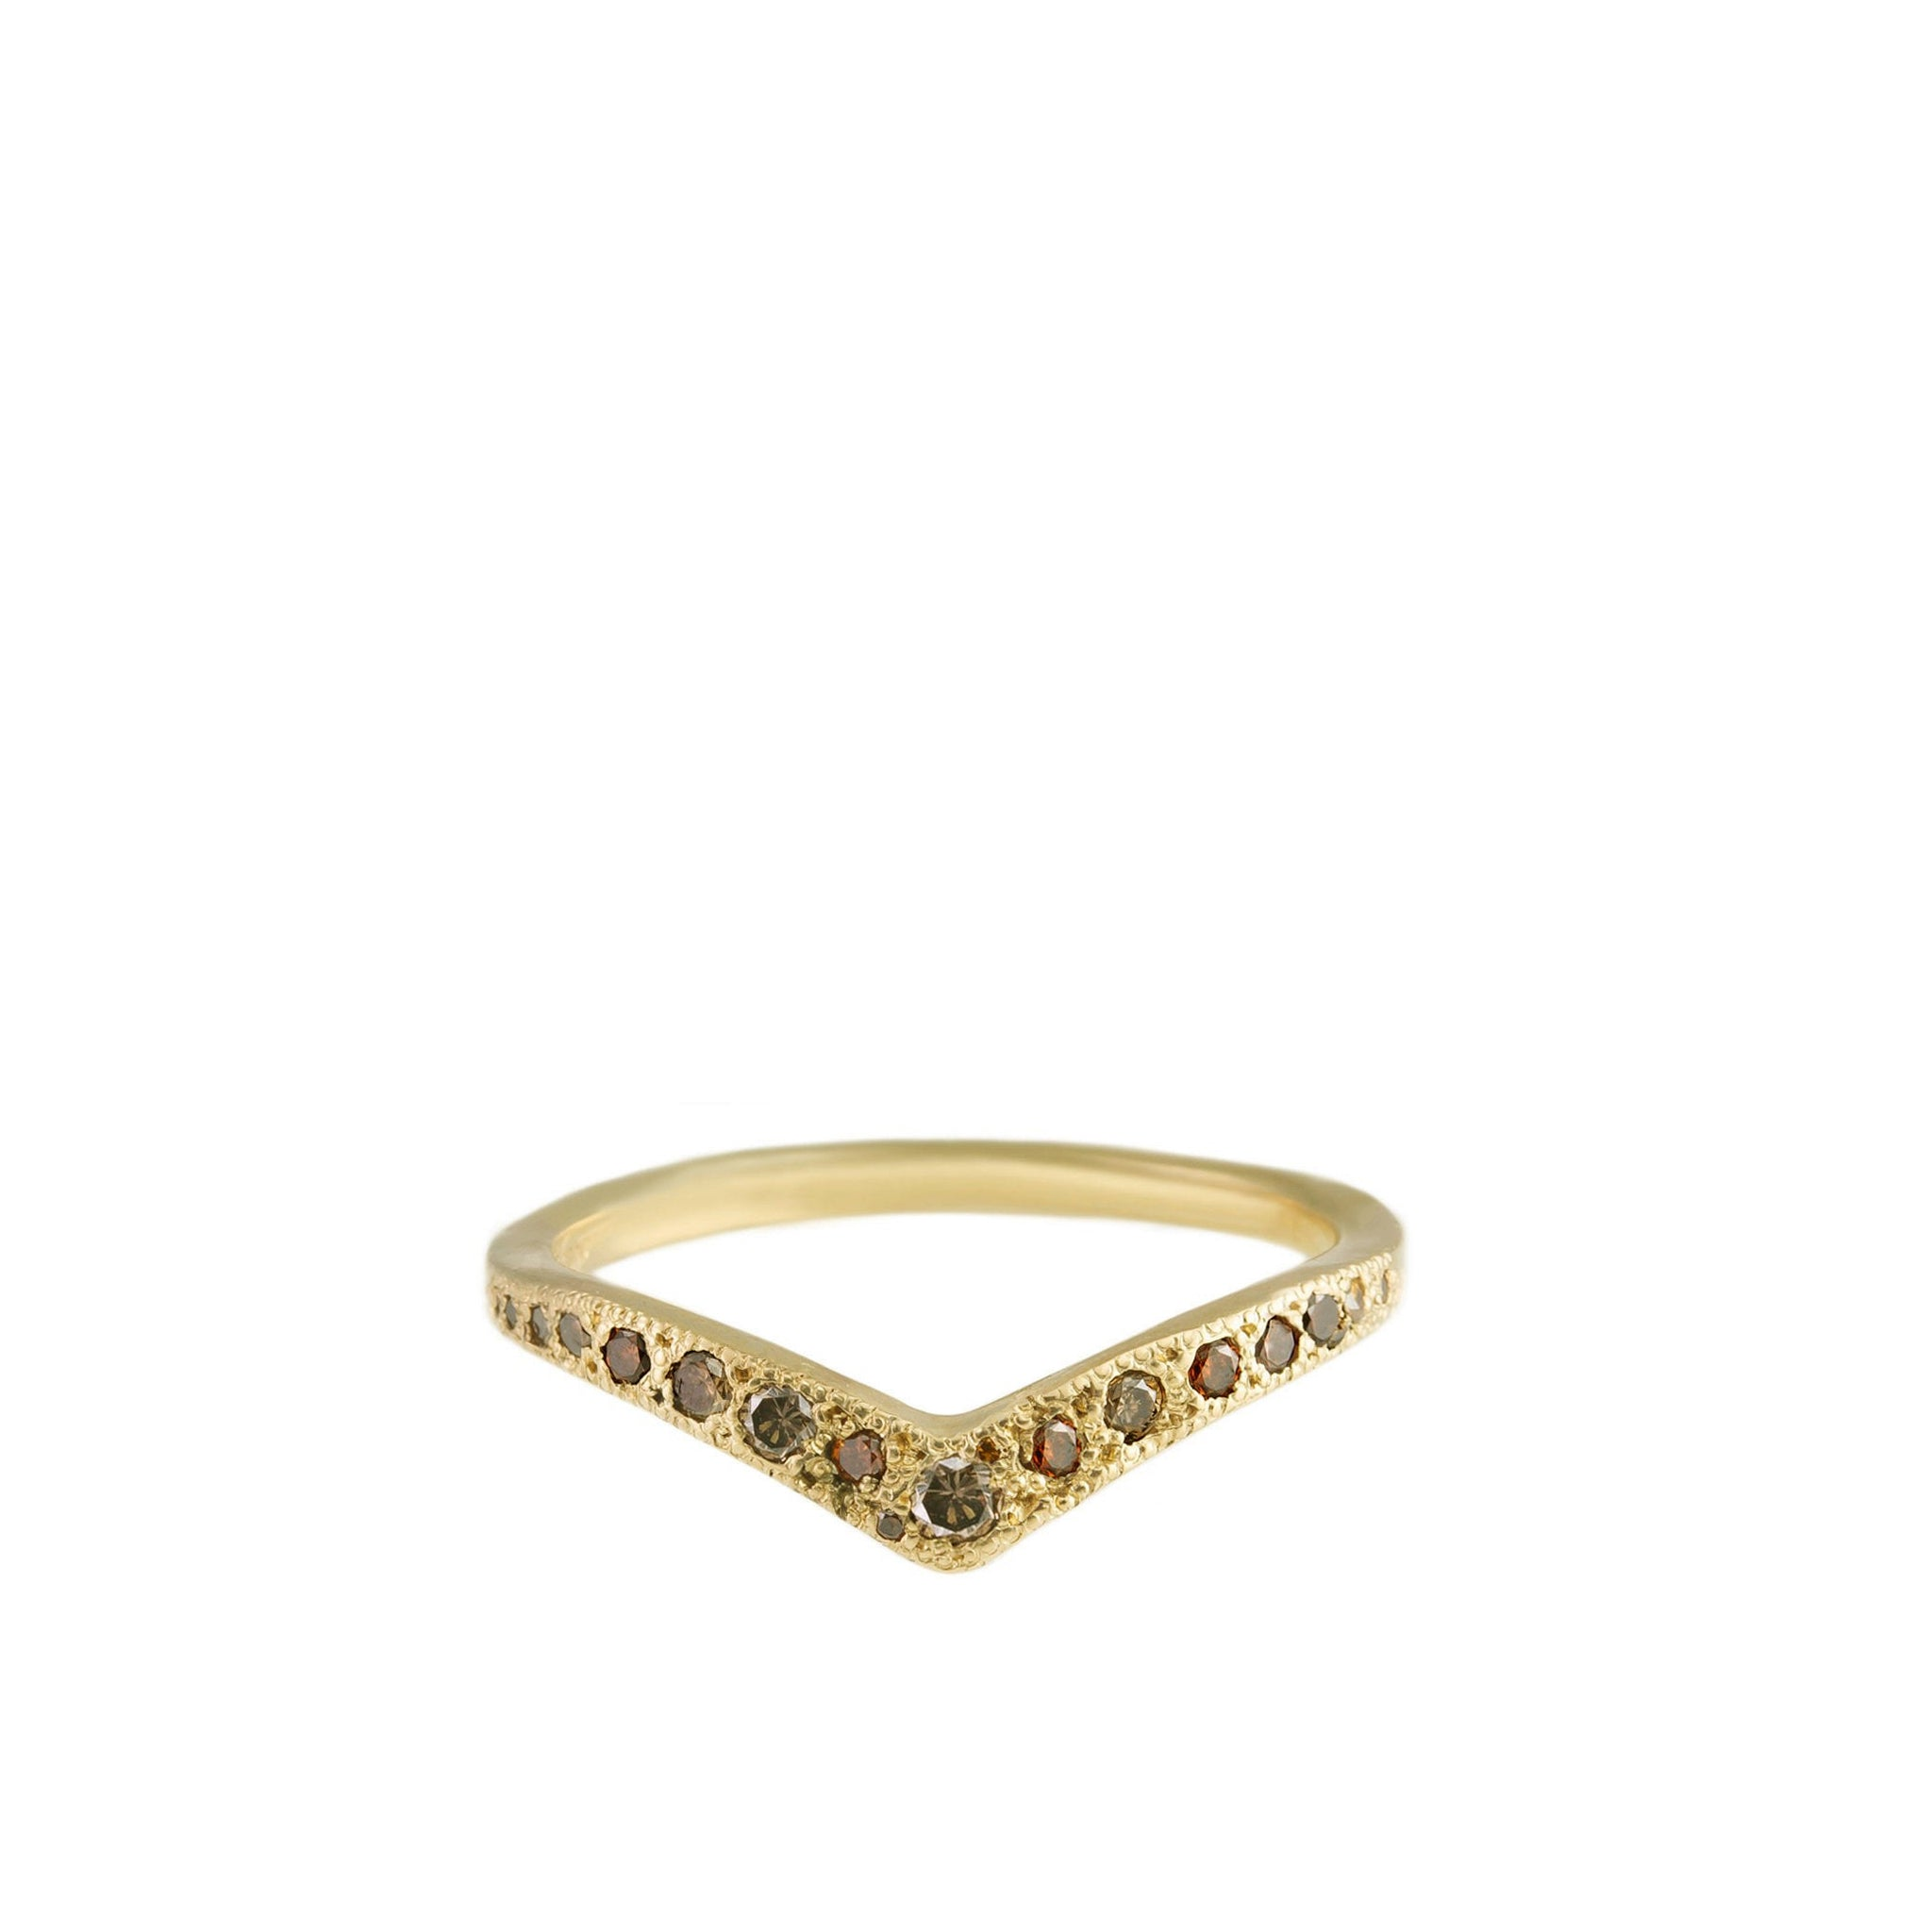 V shape gold ring with diamonds